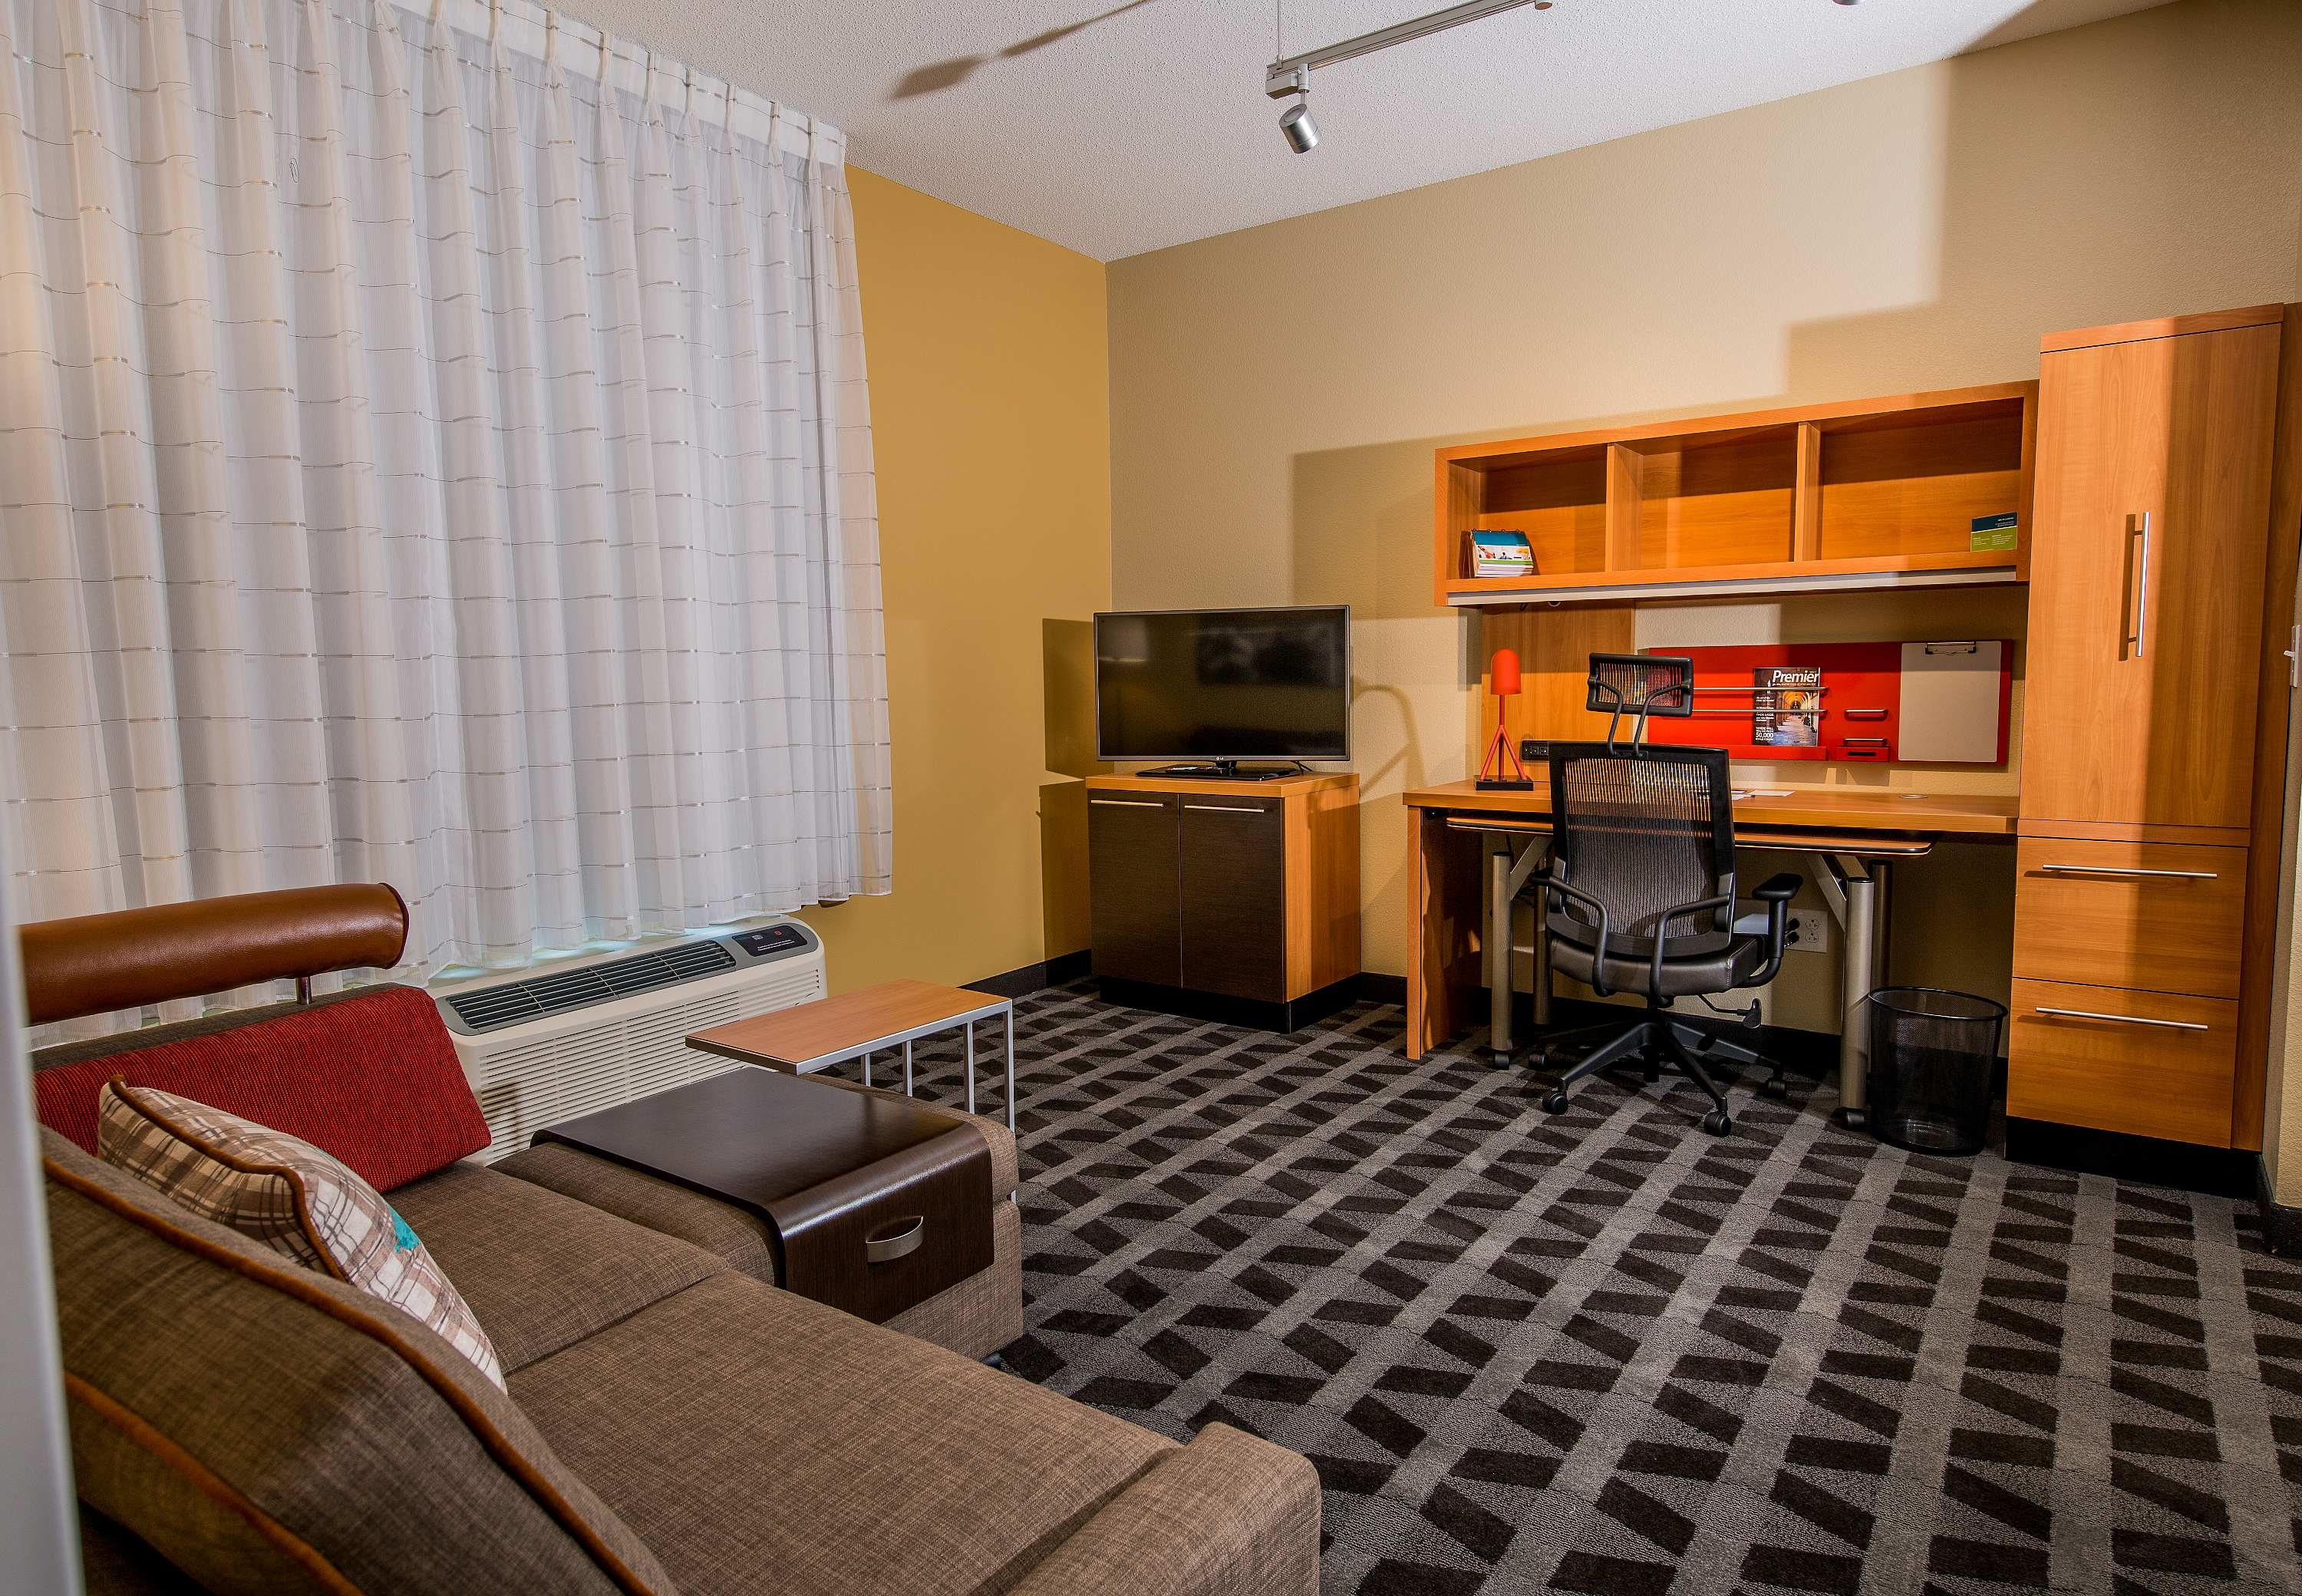 TownePlace Suites by Marriott Florence image 4